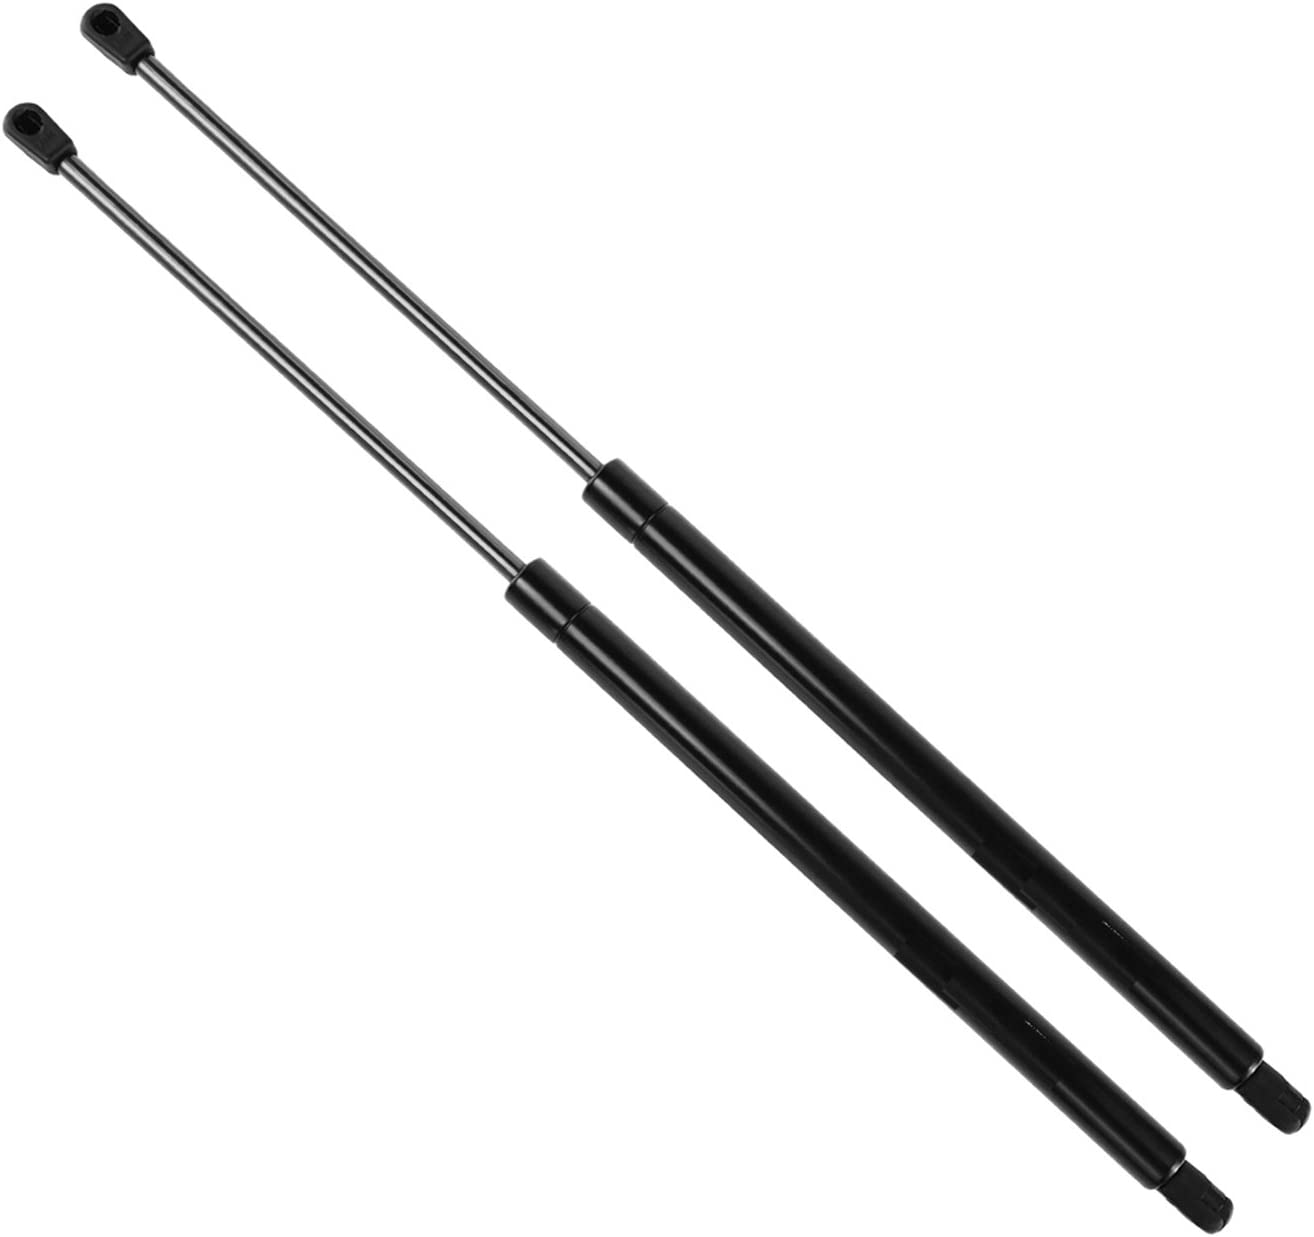 2 Arana Rear Hatch Trunk Liftgate Gas Lift Supports Struts Springs Shocks For 2004-2007 Cadillac CTS